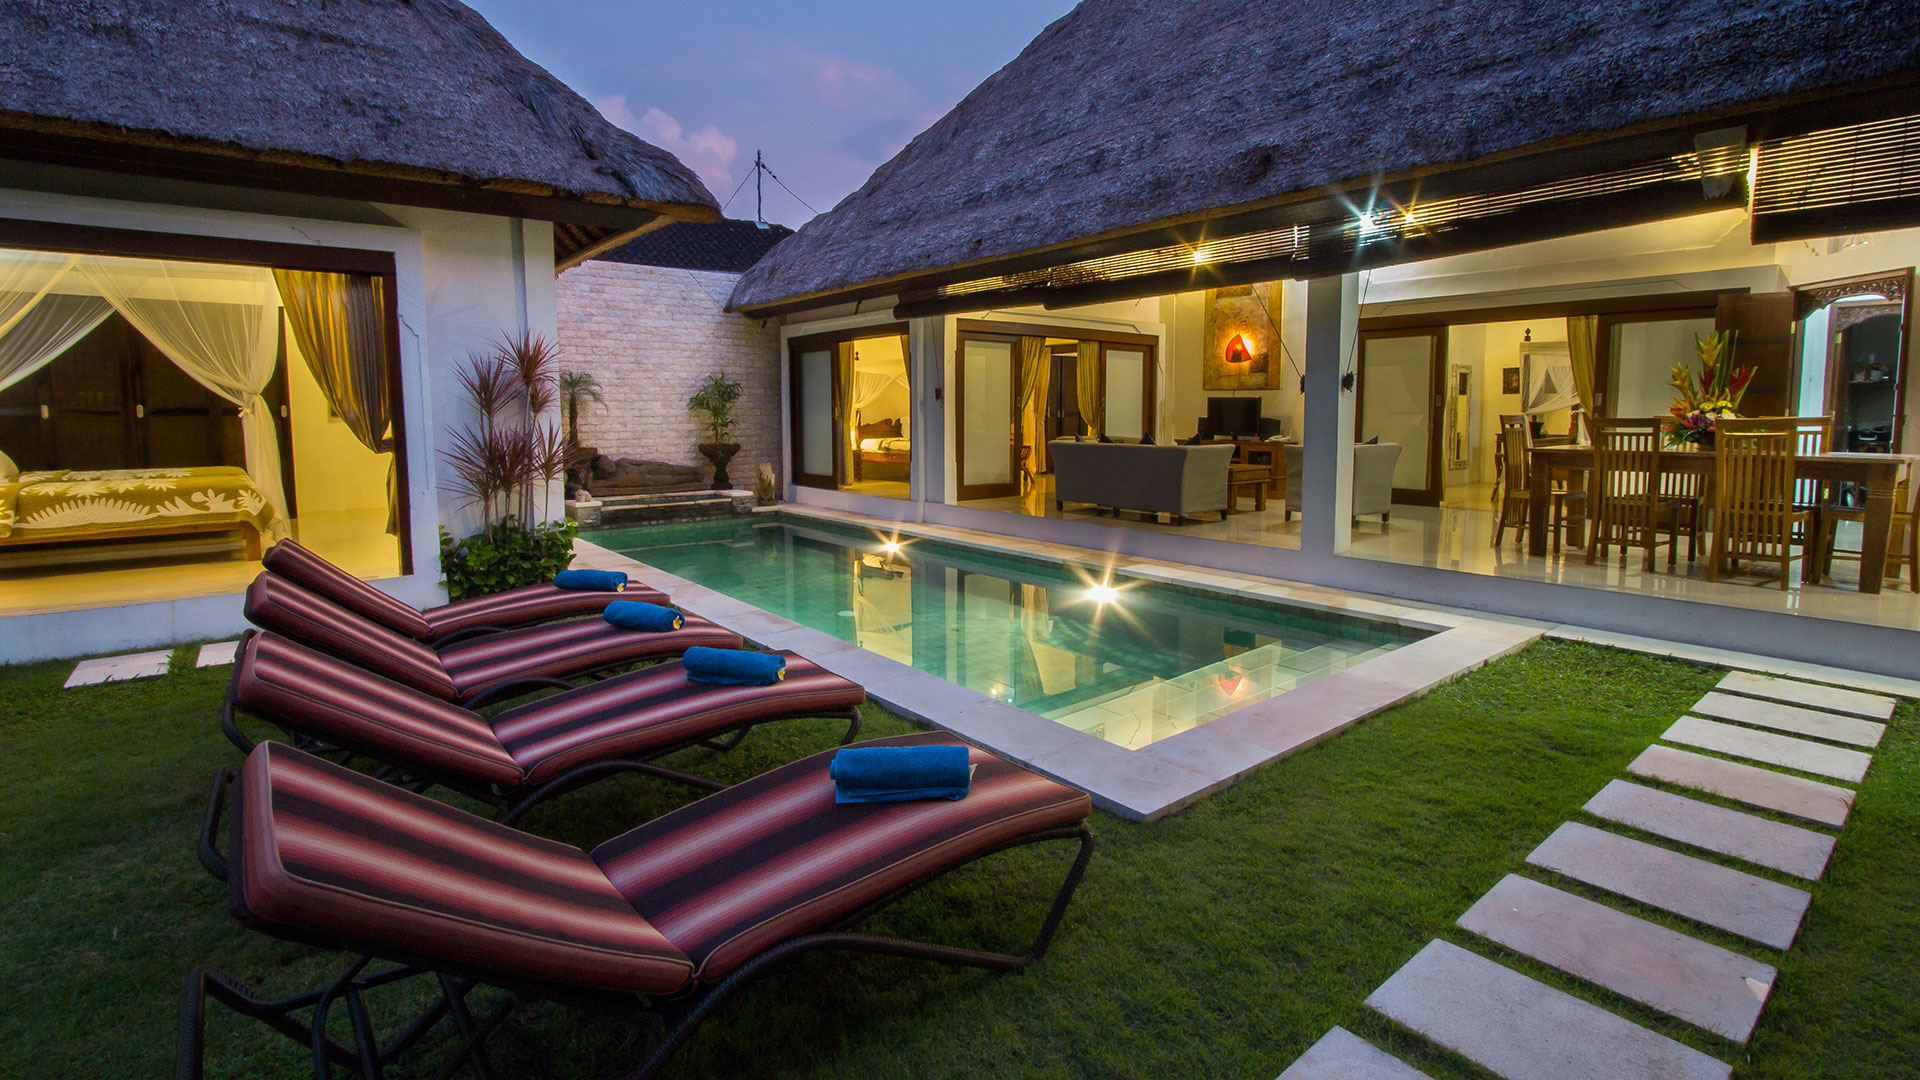 2 Bedroom simple villa located at Legian Kaja, nearby double six street Seminyak Bali.